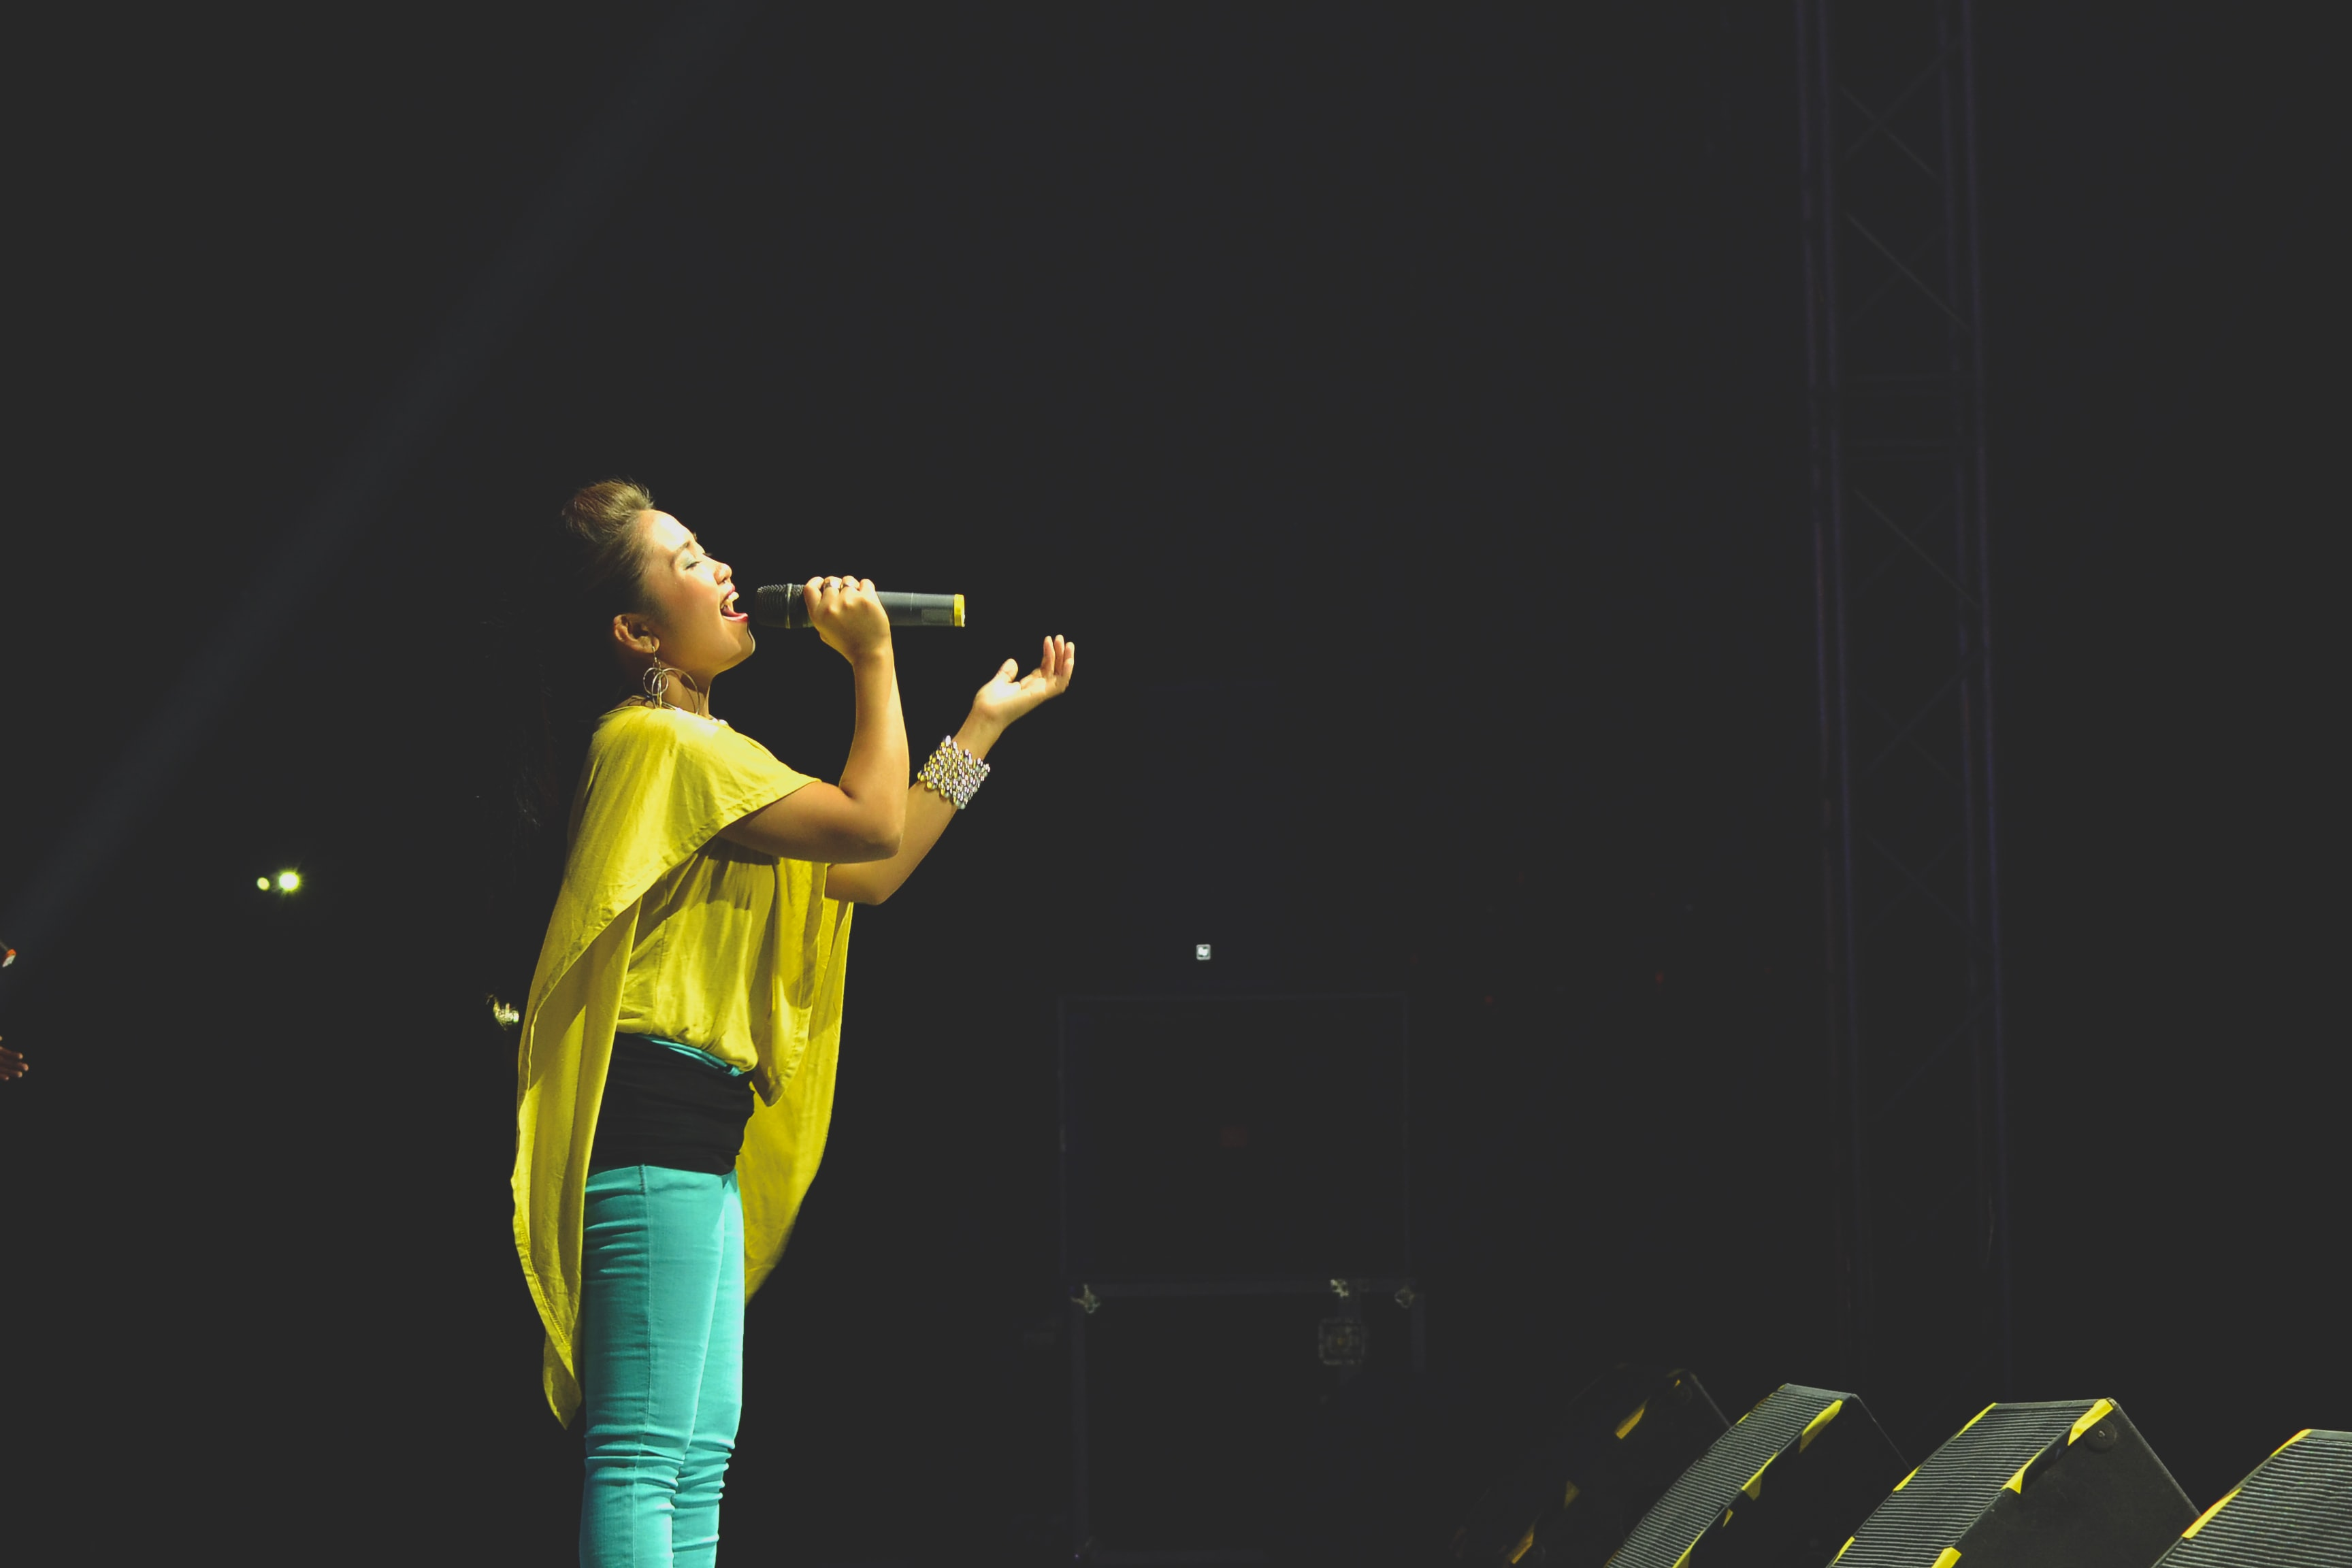 woman holding a microphone performing on stage